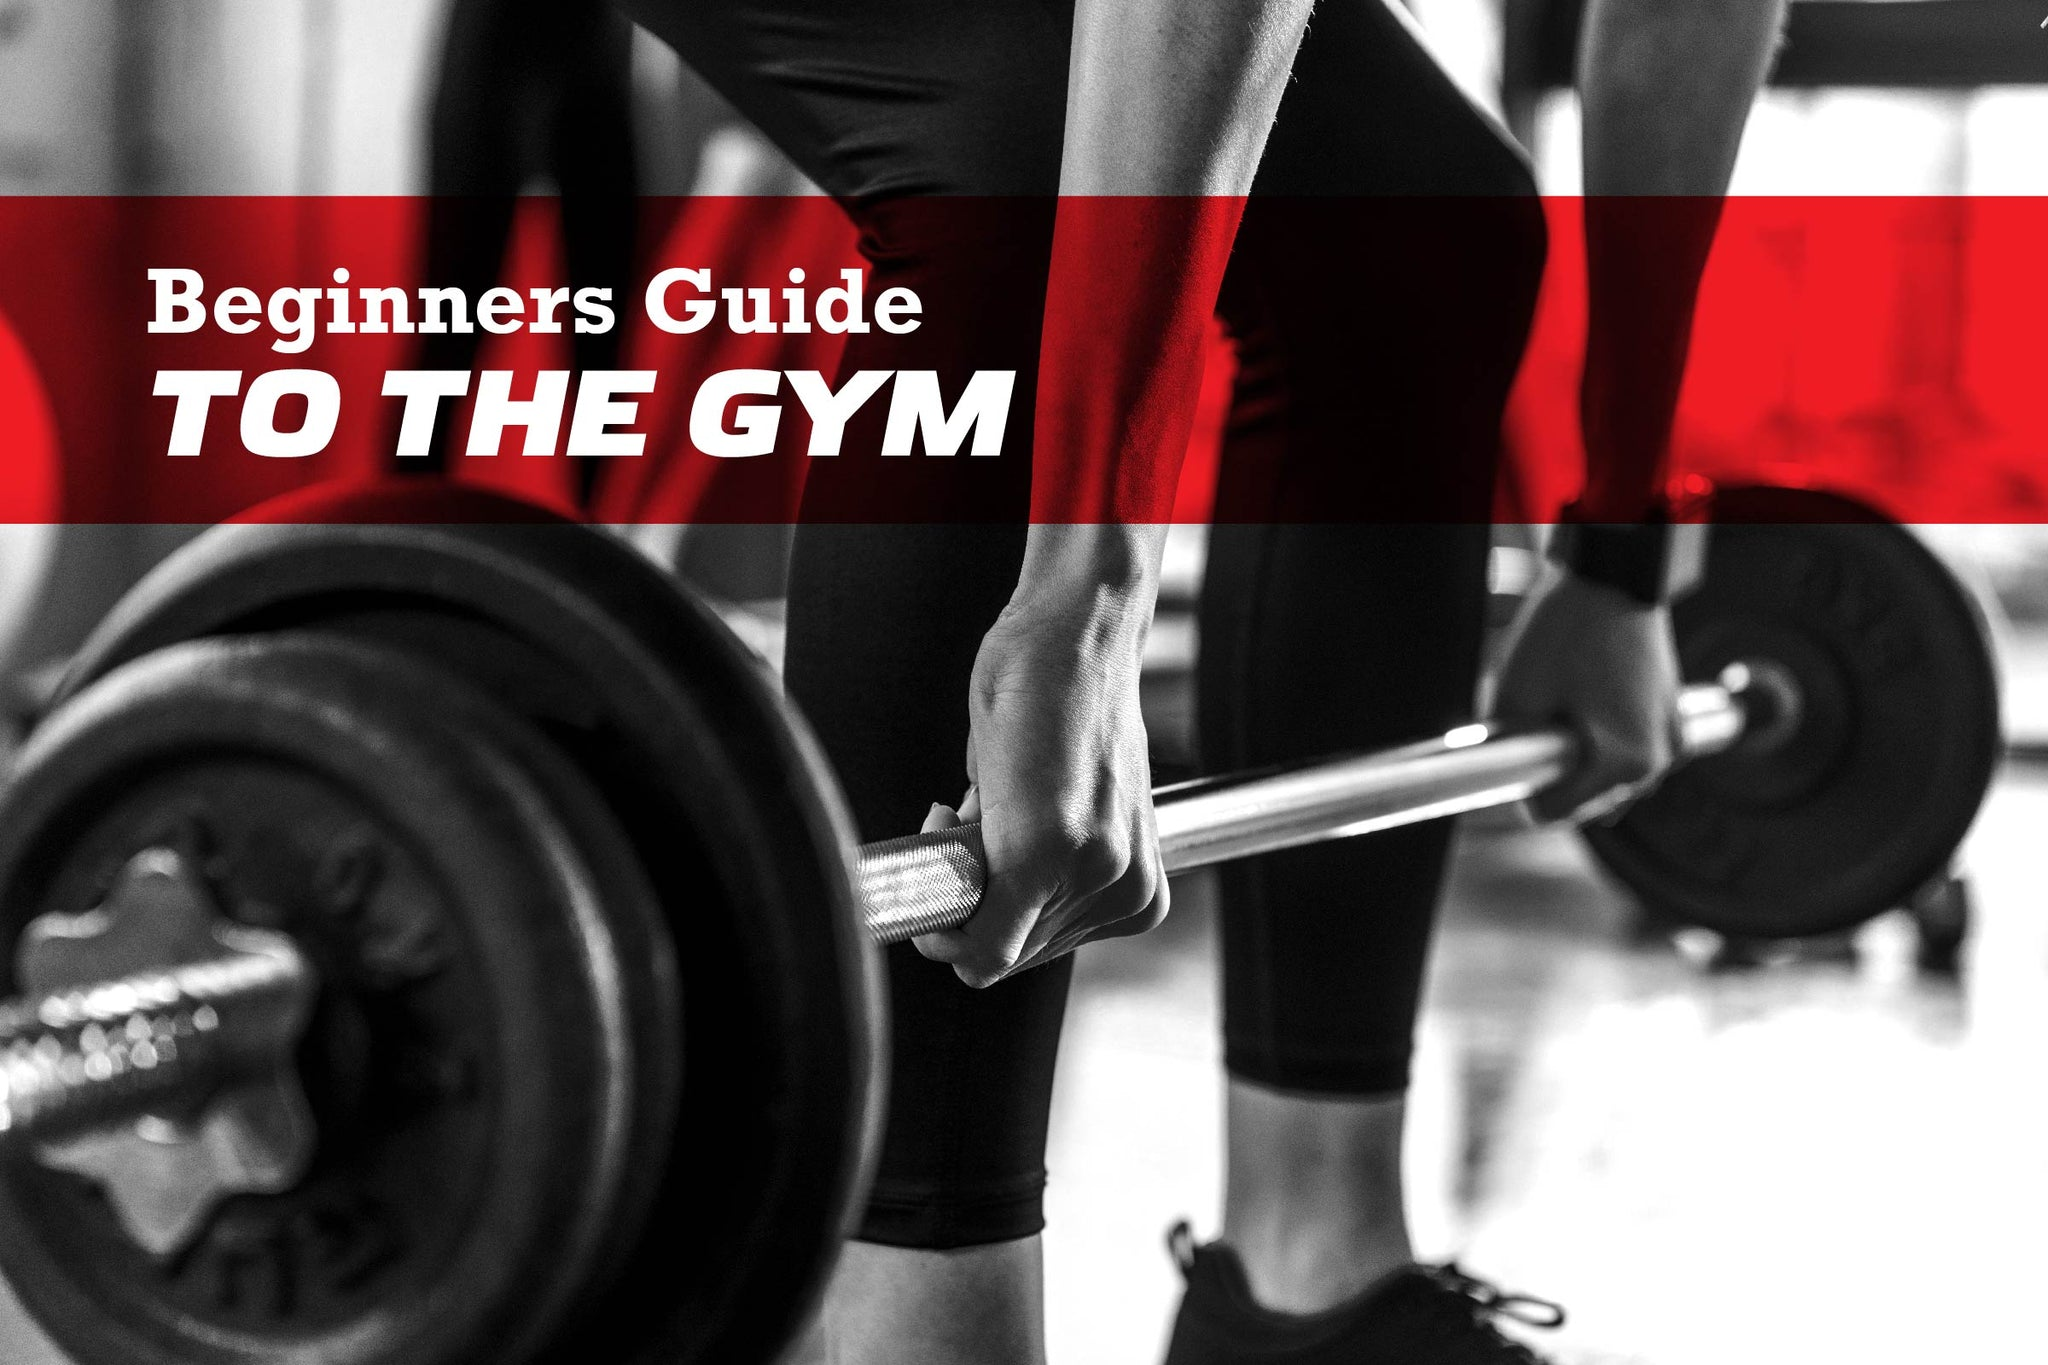 How To Get The Most Out Of The Gym